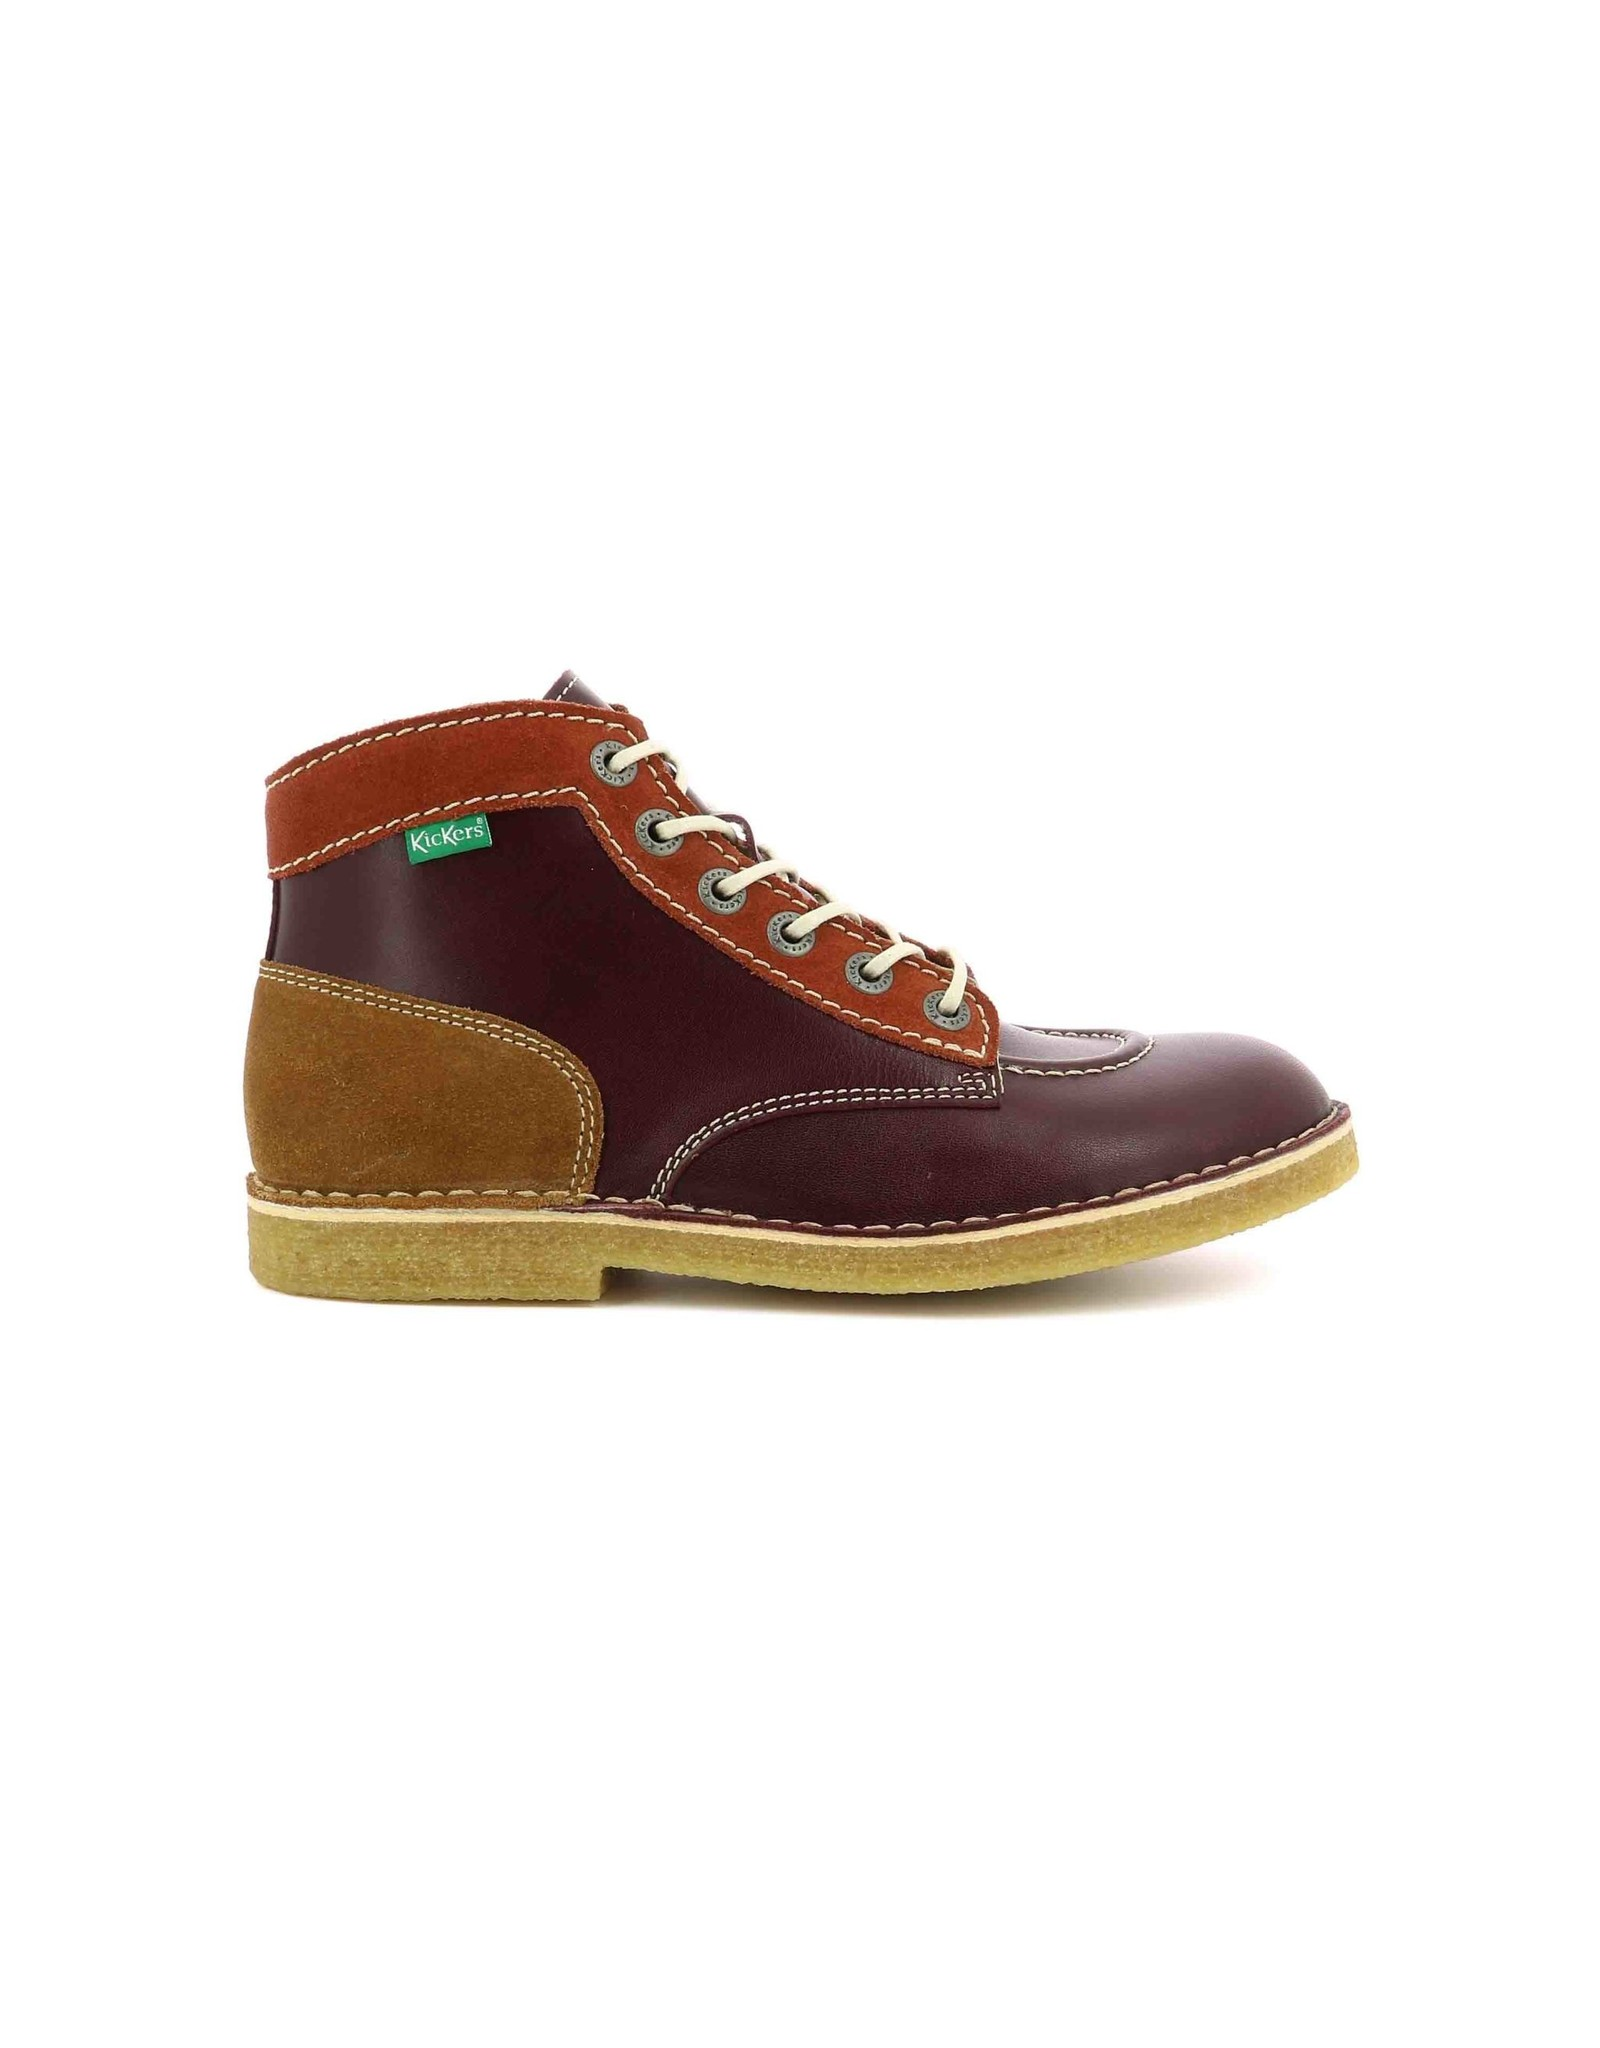 KICKERS KICK LEGEND BORDEAUX MULTICOLORE K1980BOM 19E660243-60